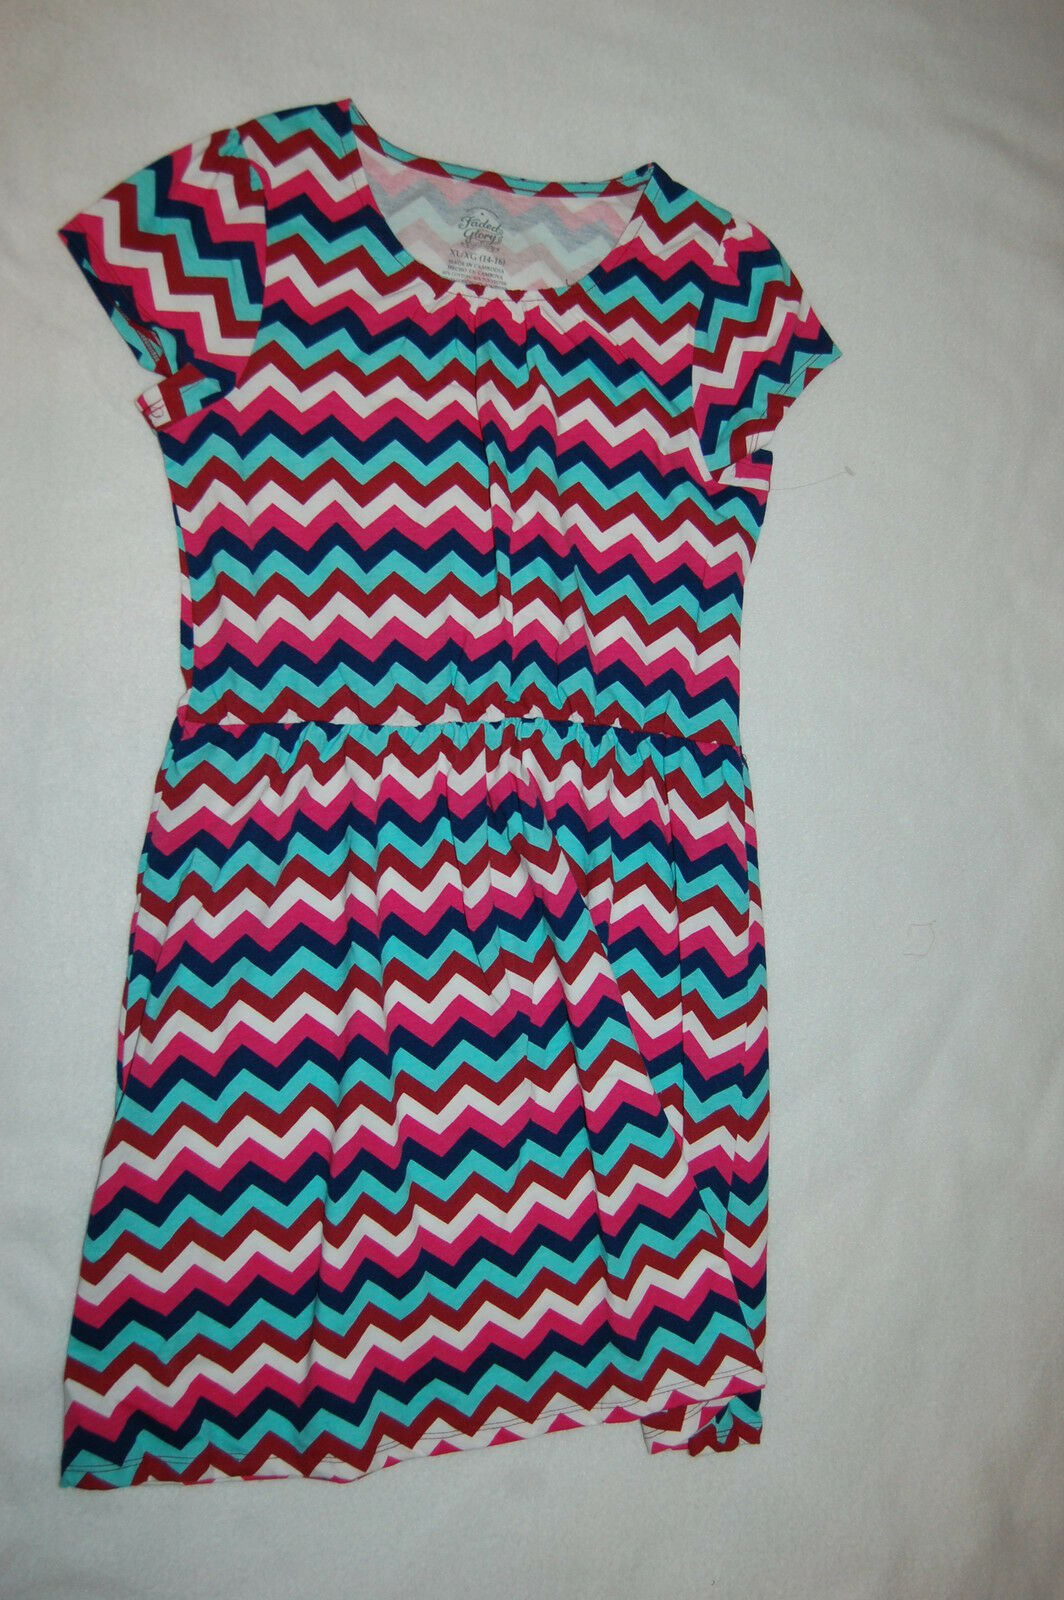 e3e6212fc Girls S s Dress Chevron Zig Zag Pink Navy Burgundy Aqua Casual Play ...